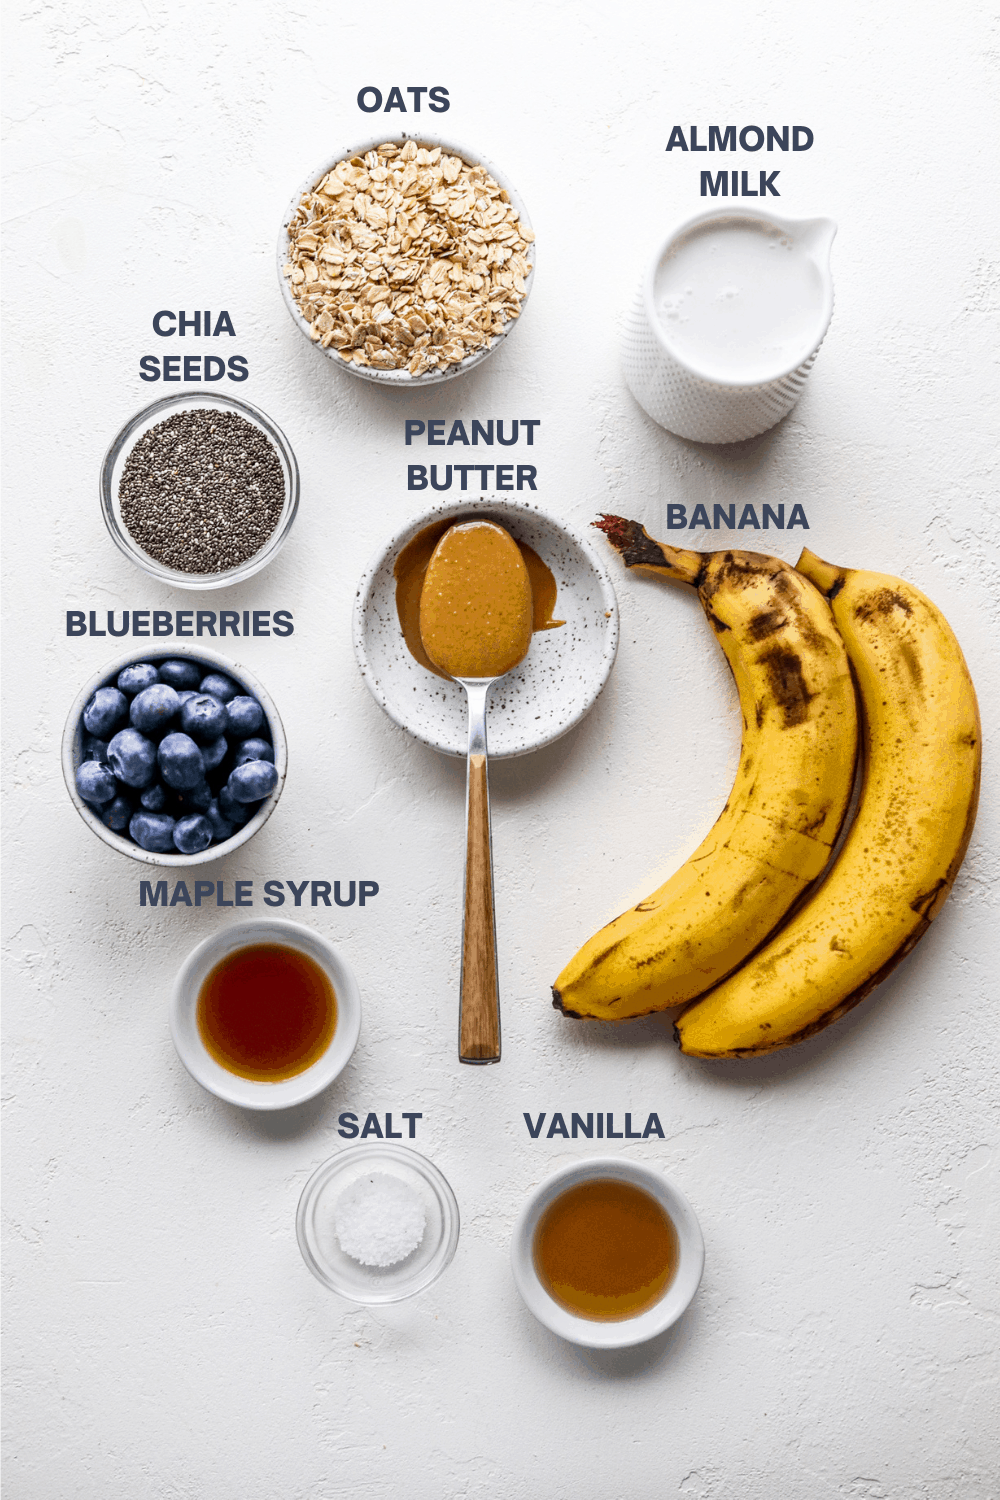 oats, milk, blueberries, peanut butter and whole bananas on a white surface